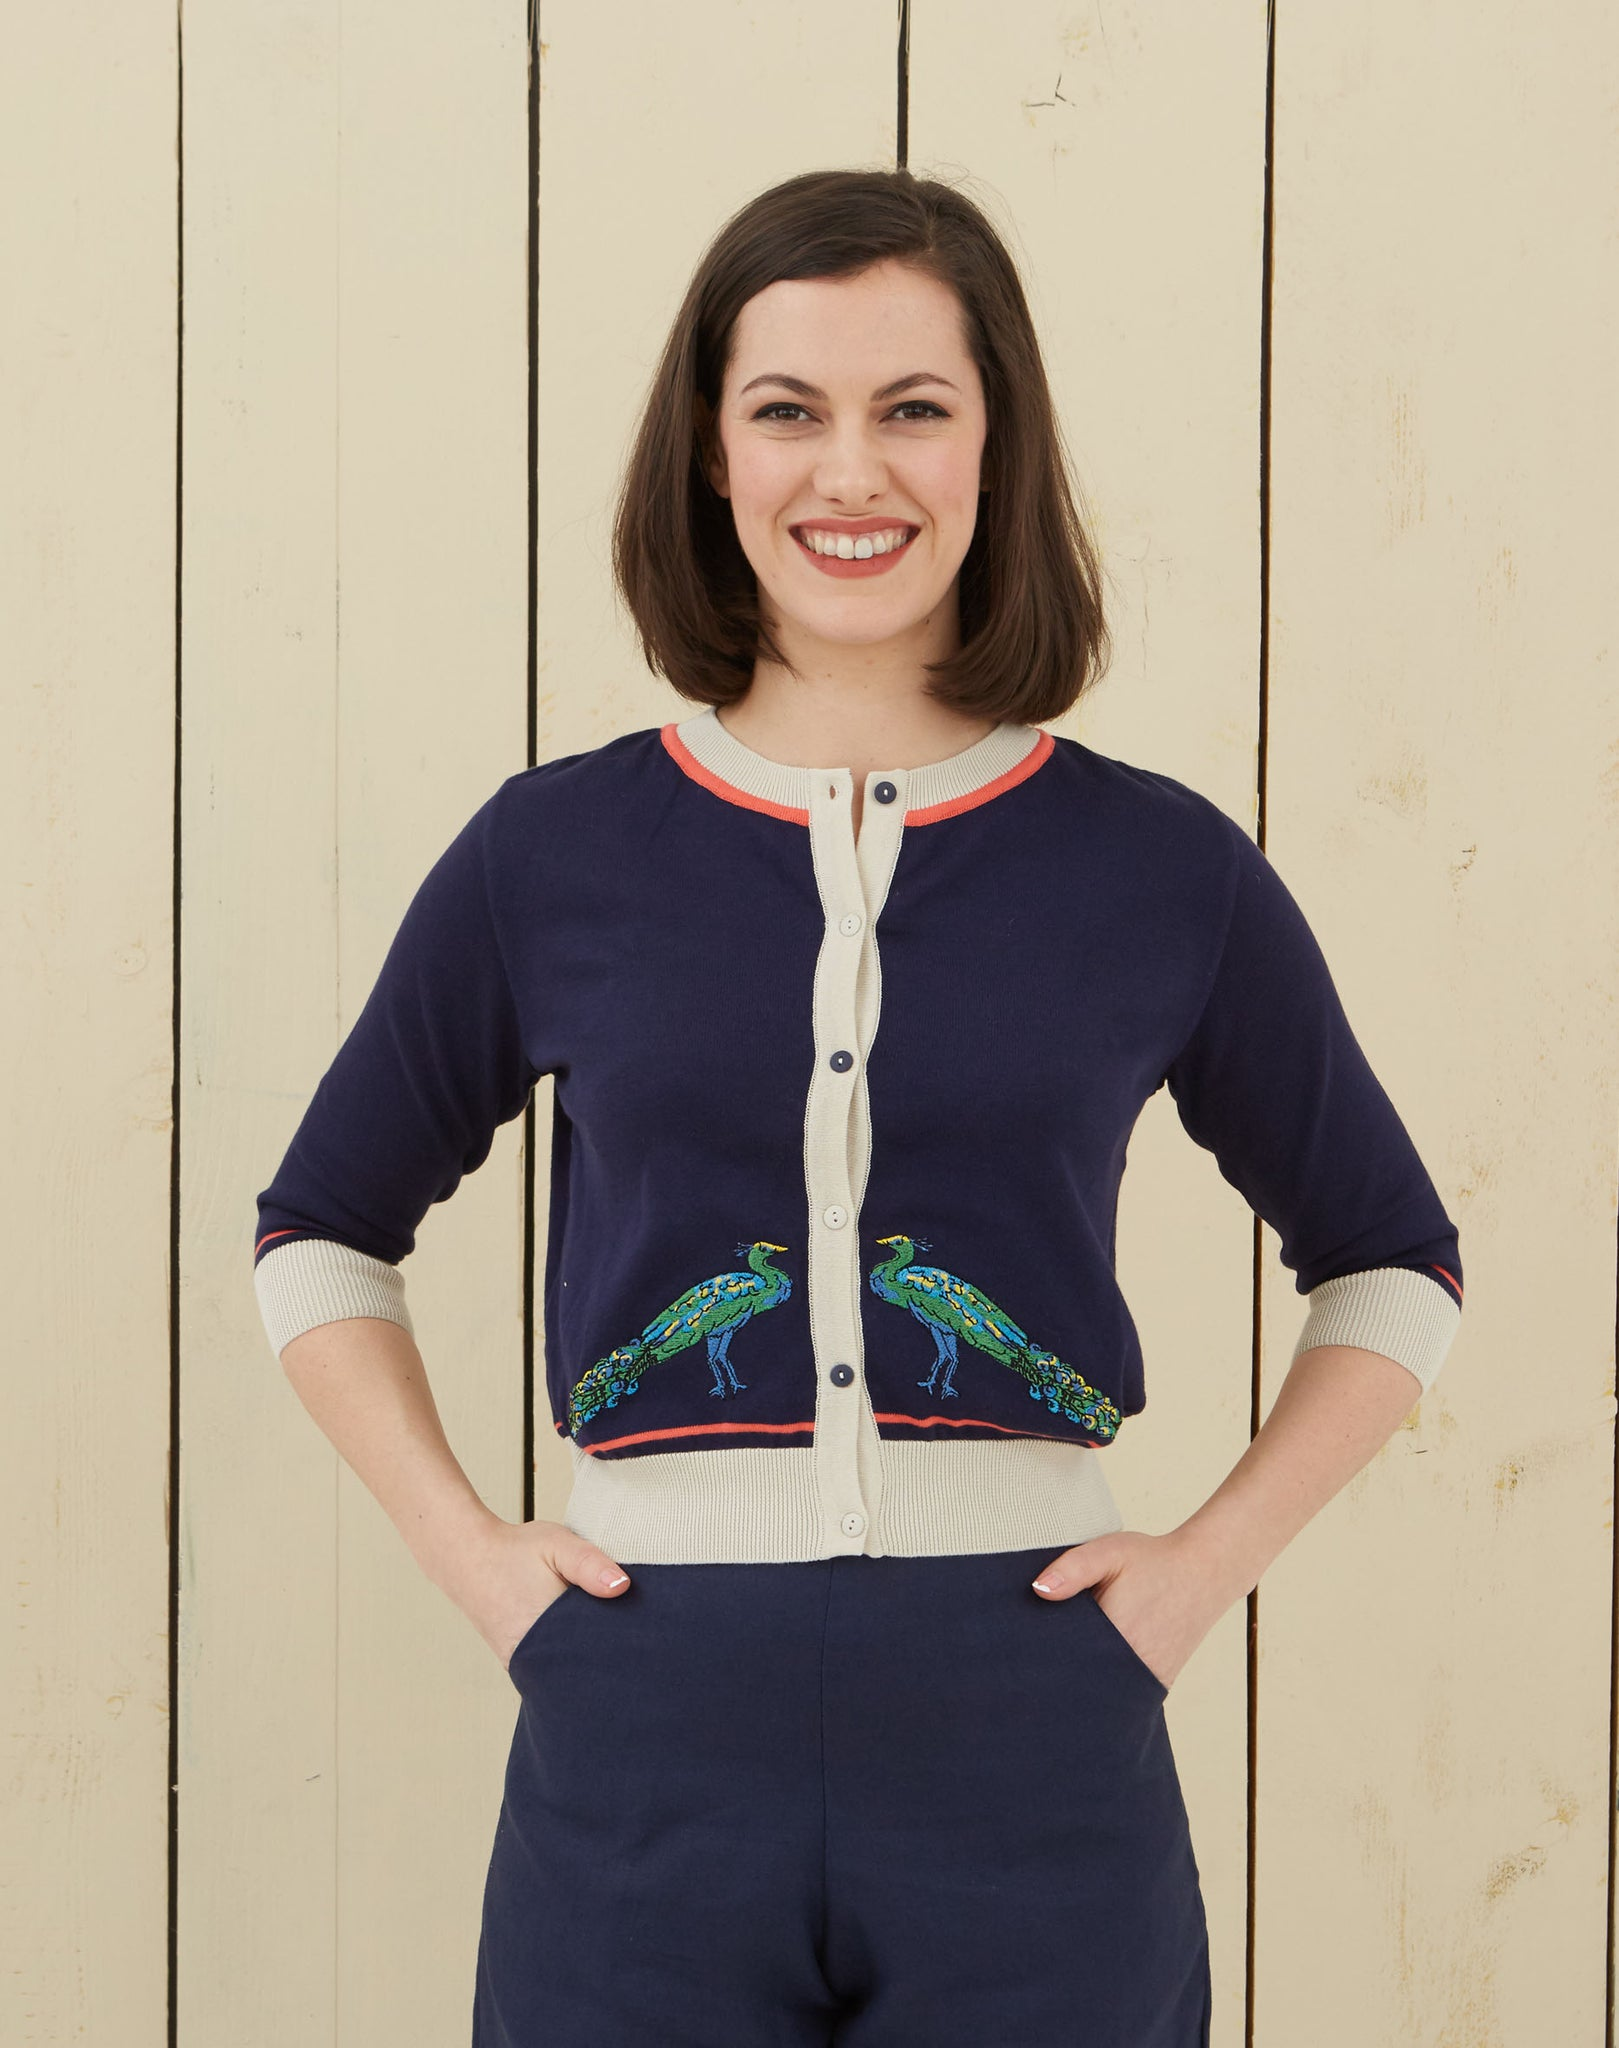 Women's Navy Peacock Embroidered Retro Cardigan | Organic Cotton